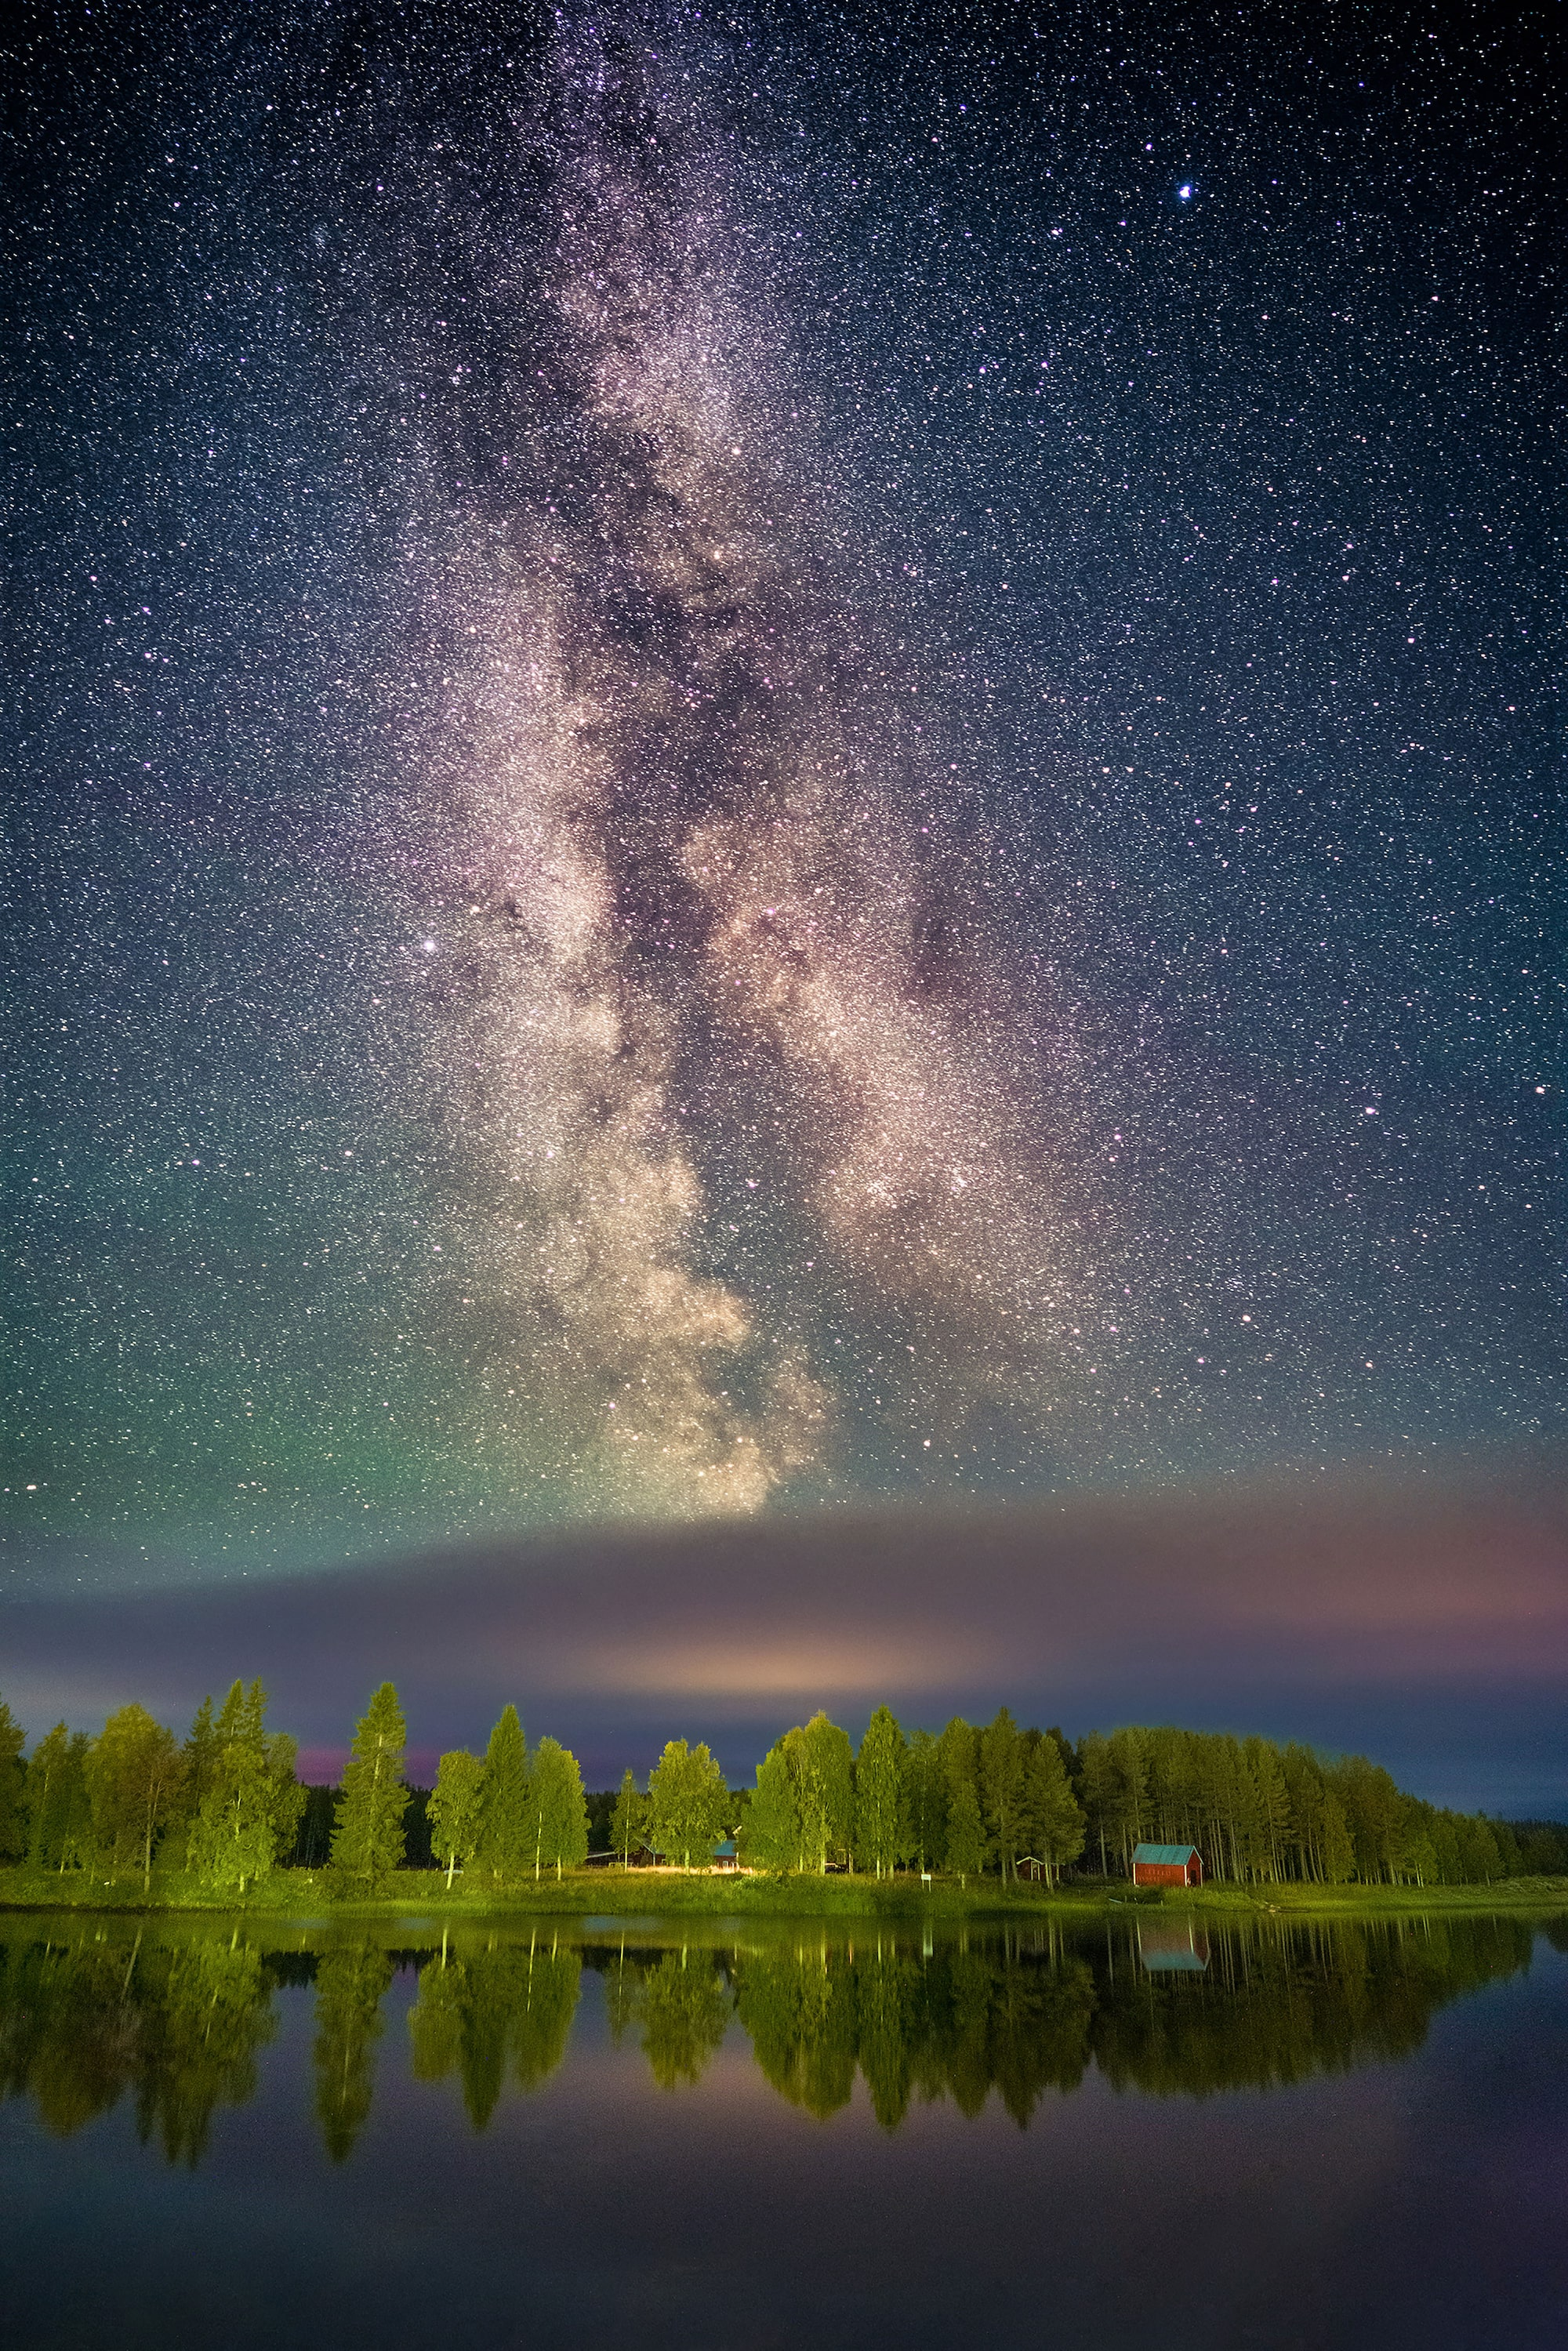 michael schaake sony alpha 7RIII the milky way sparkling above a forest